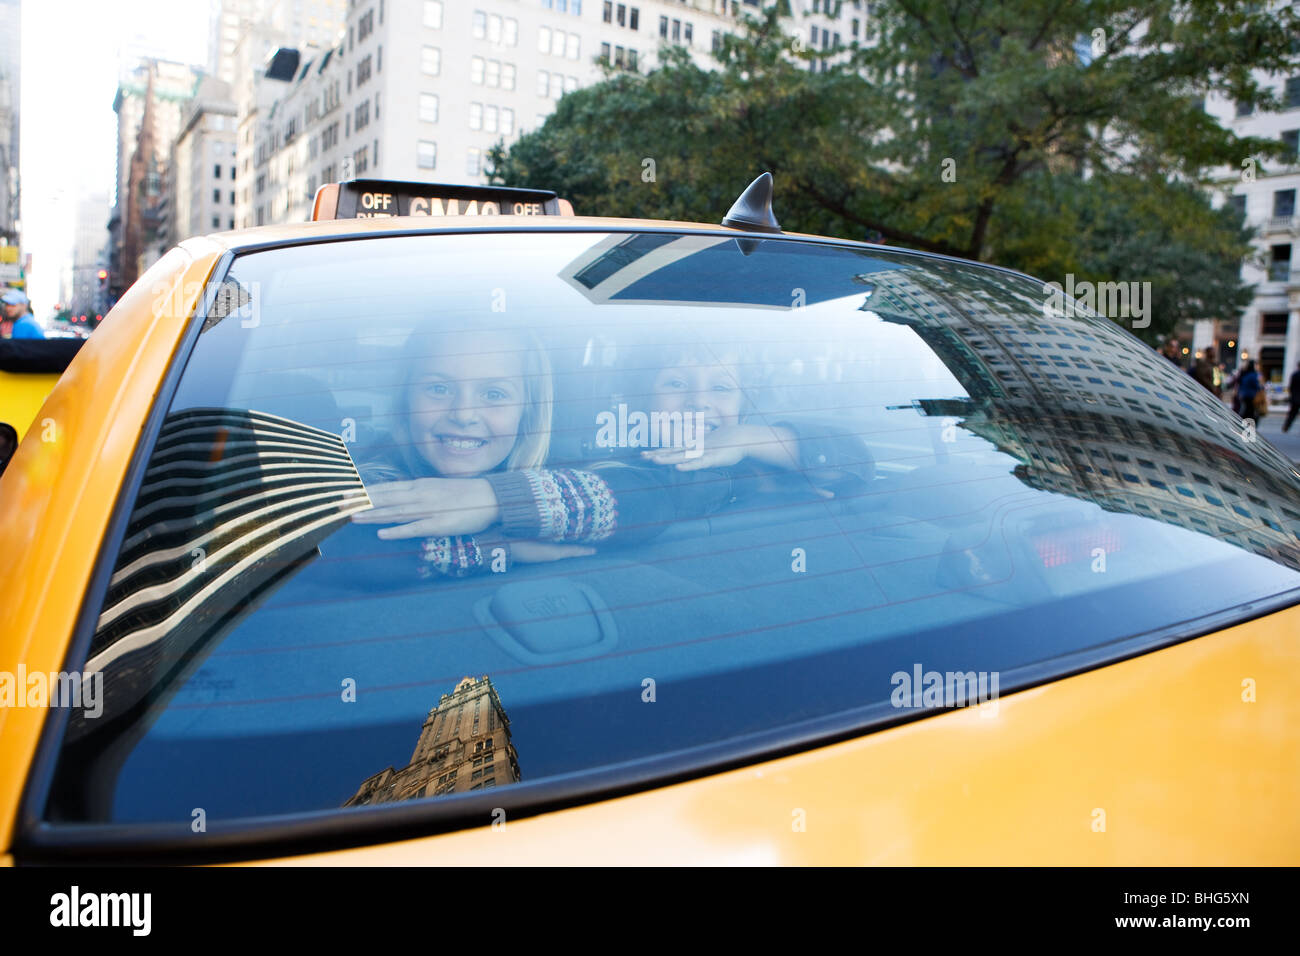 Boy and girl in taxicab - Stock Image